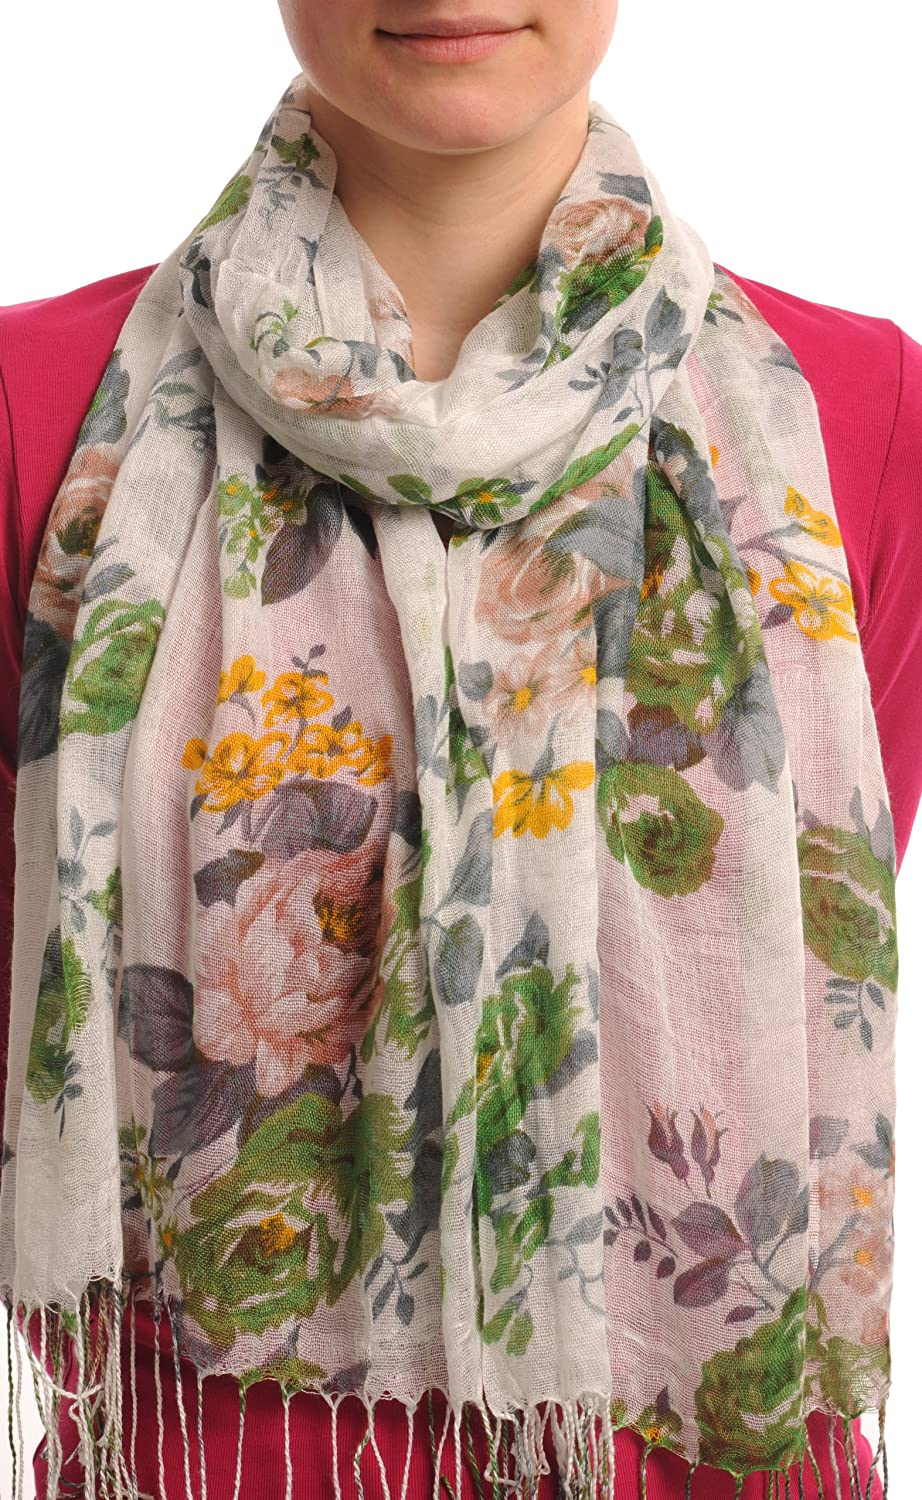 Green & Beige Roses On White With Tassels - Multicolored Designer Scarf